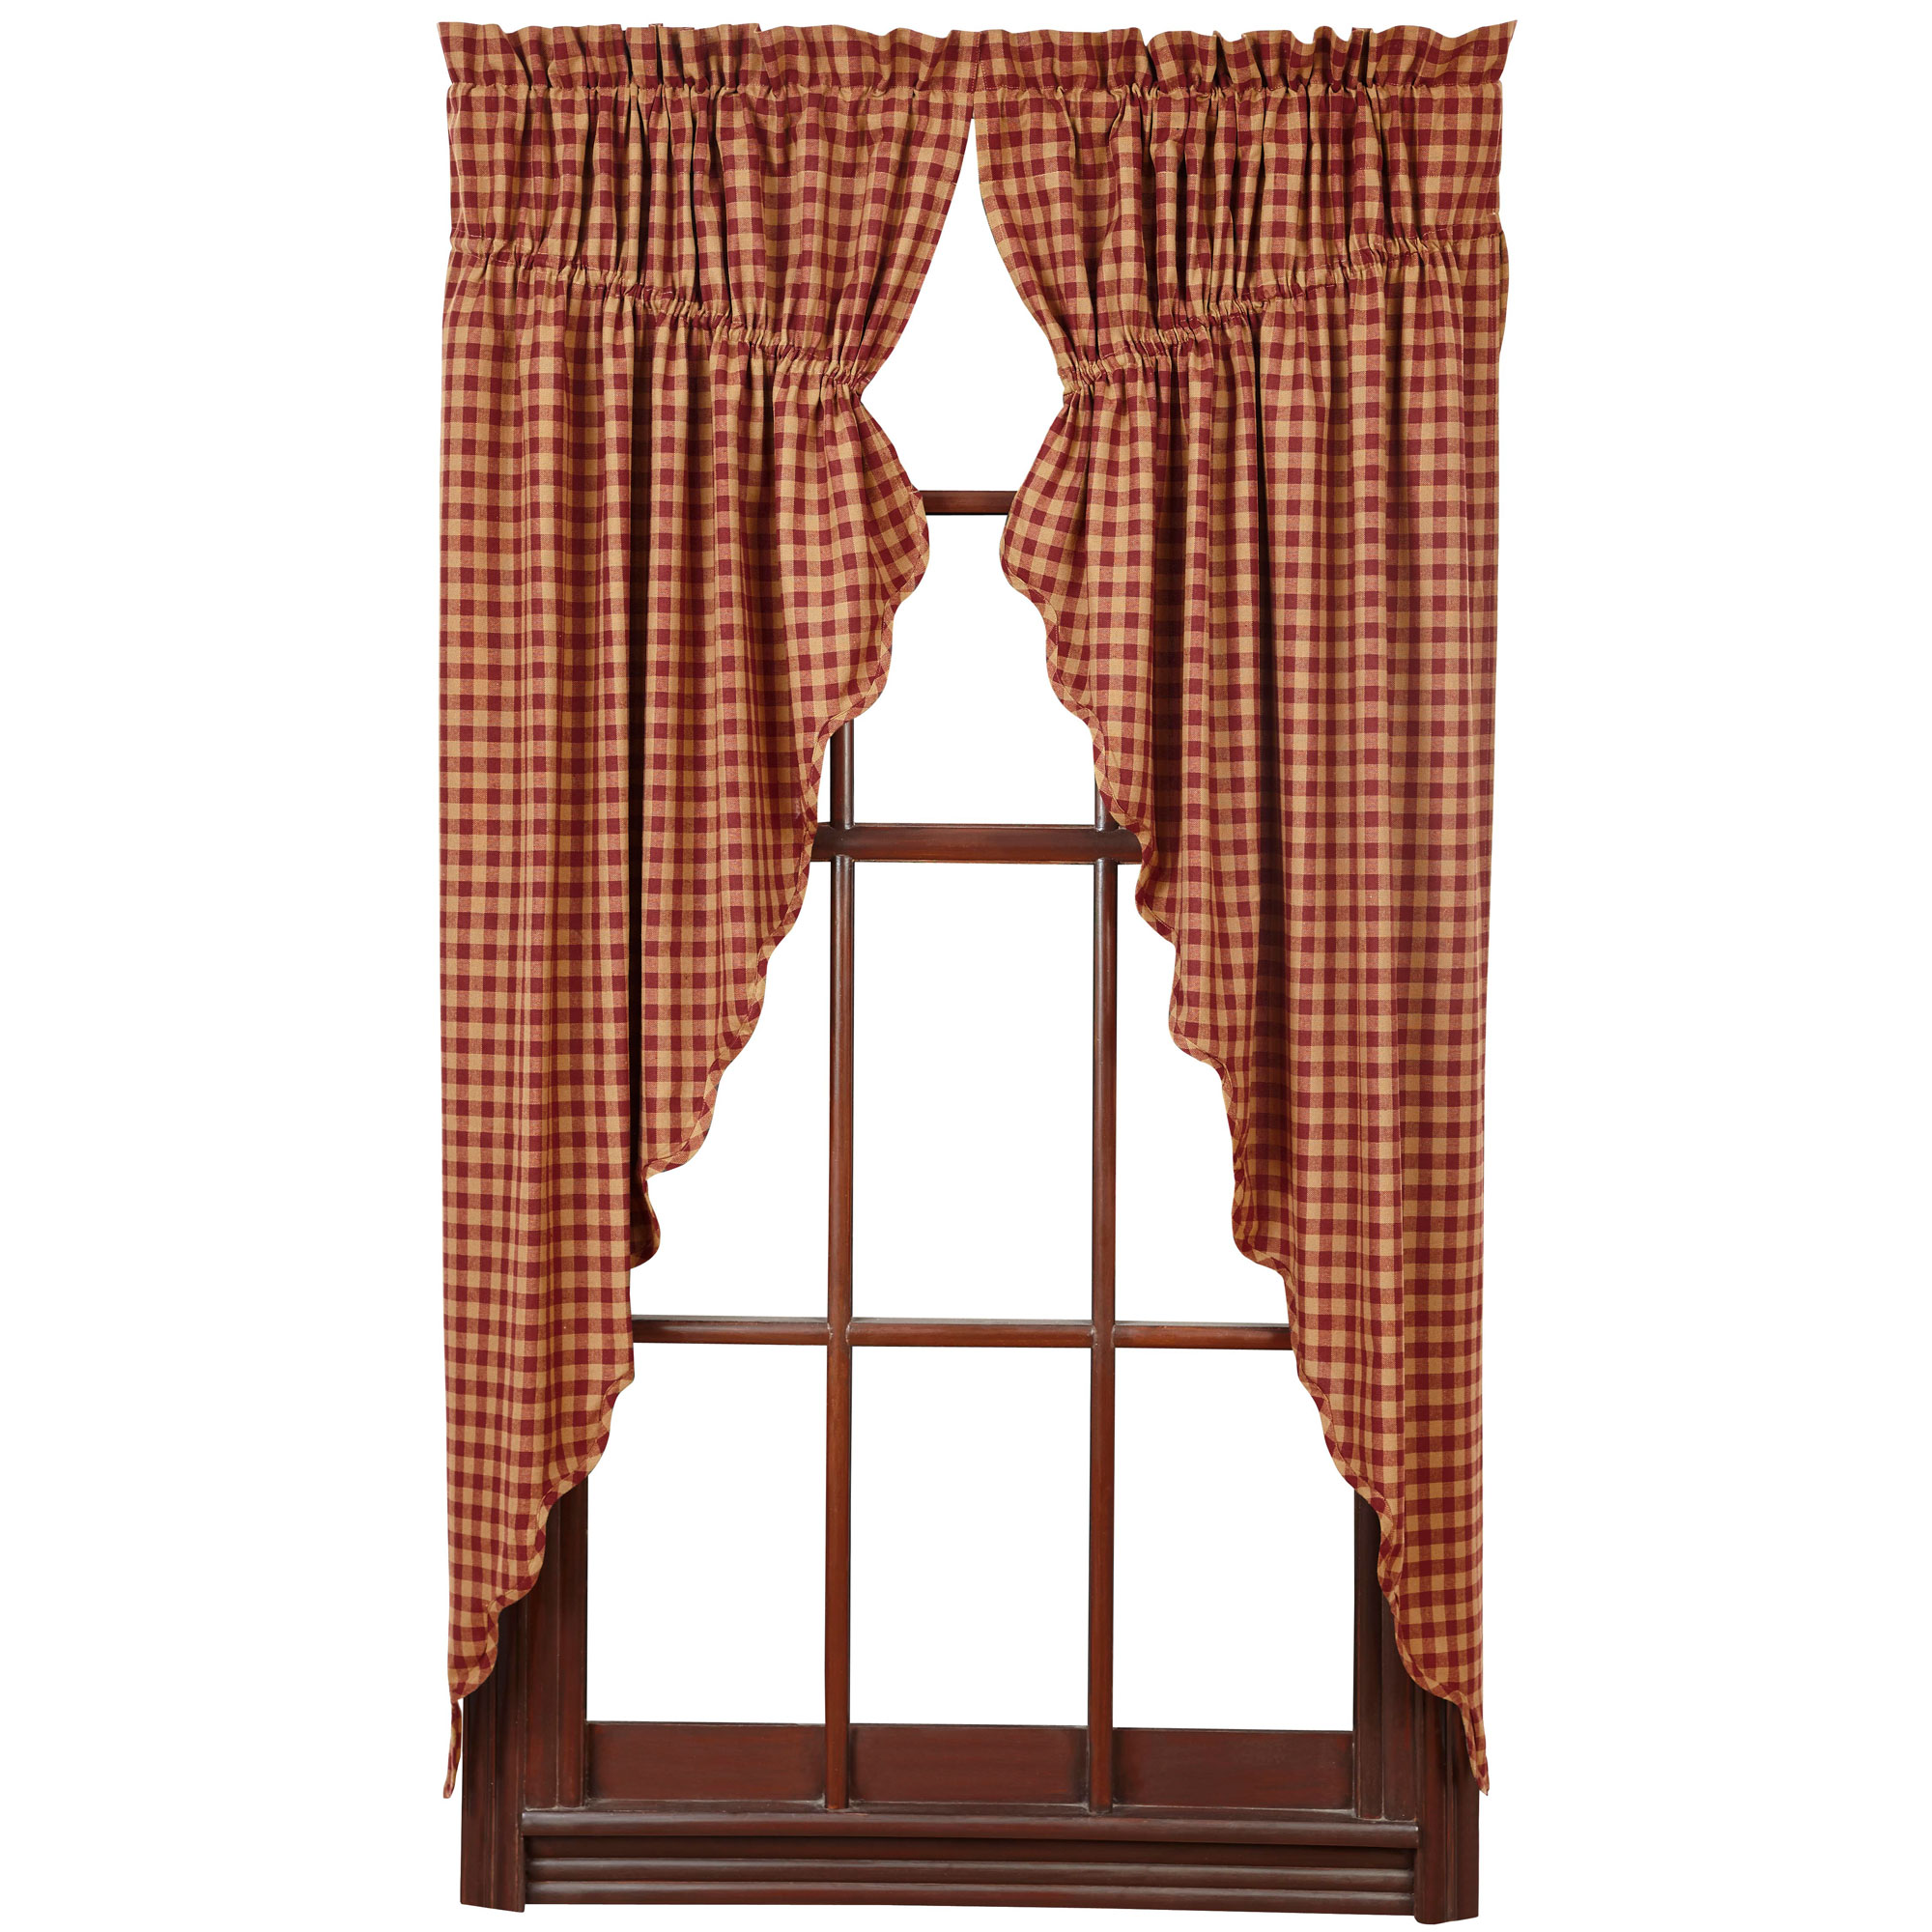 Check Scalloped Prairie Curtains By VHC Brands Navy